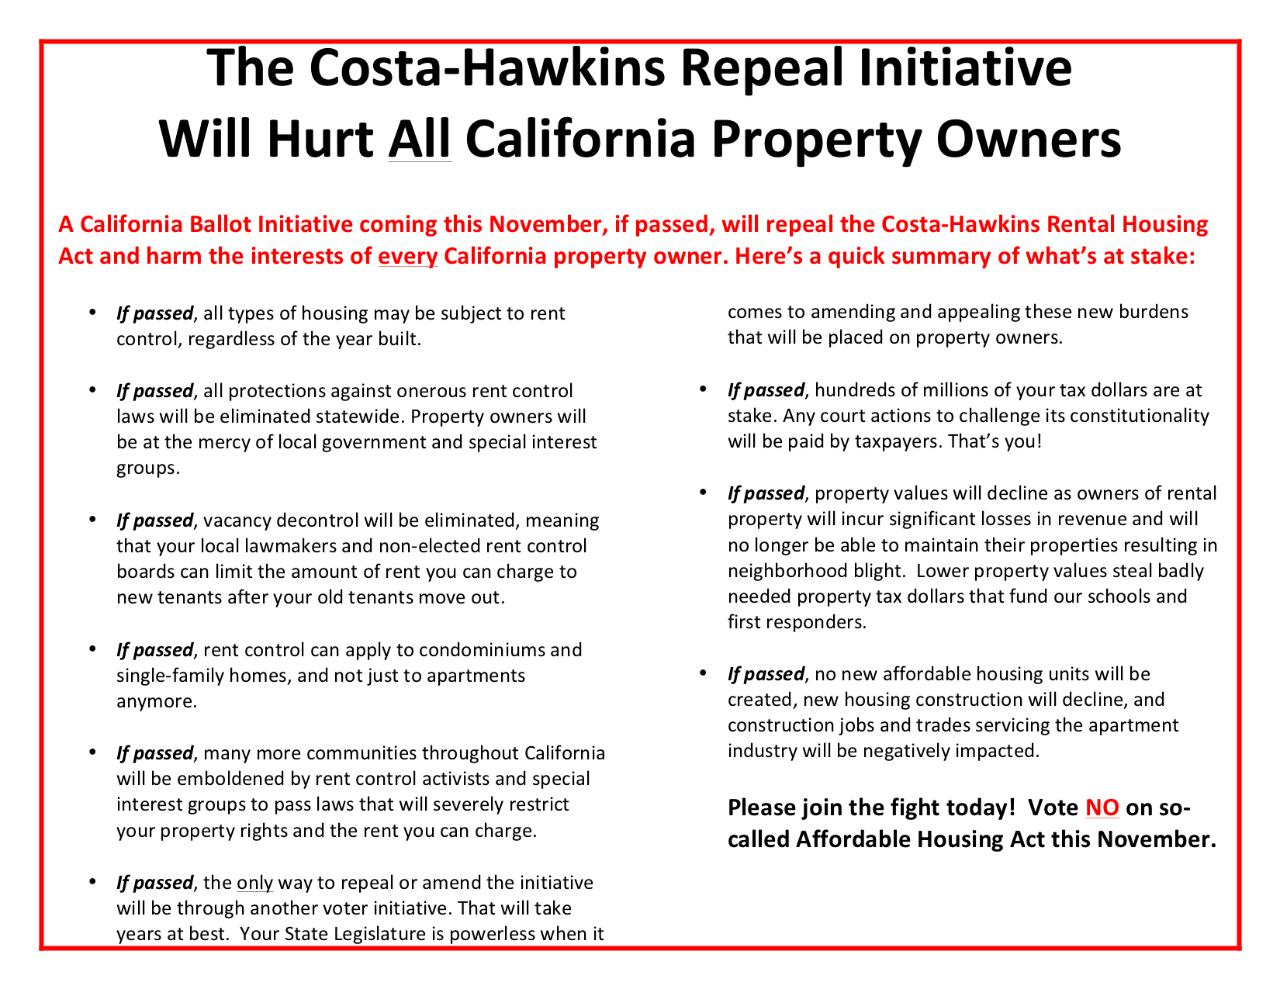 MISSION AAGLA Directly Advocates For The Rental Housing